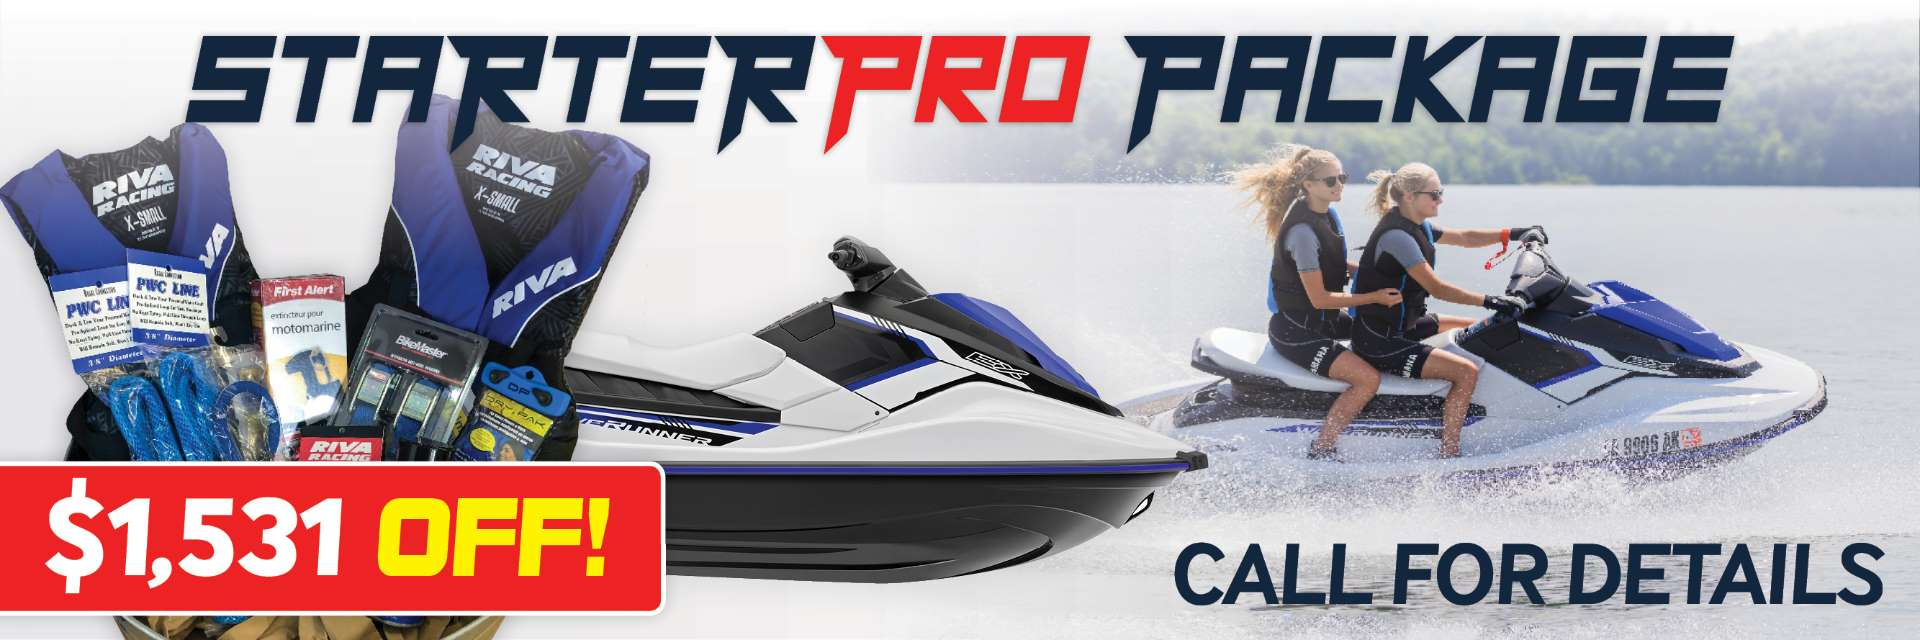 2018 Yamaha EX WaveRunner Starter Pro Package by RIVA